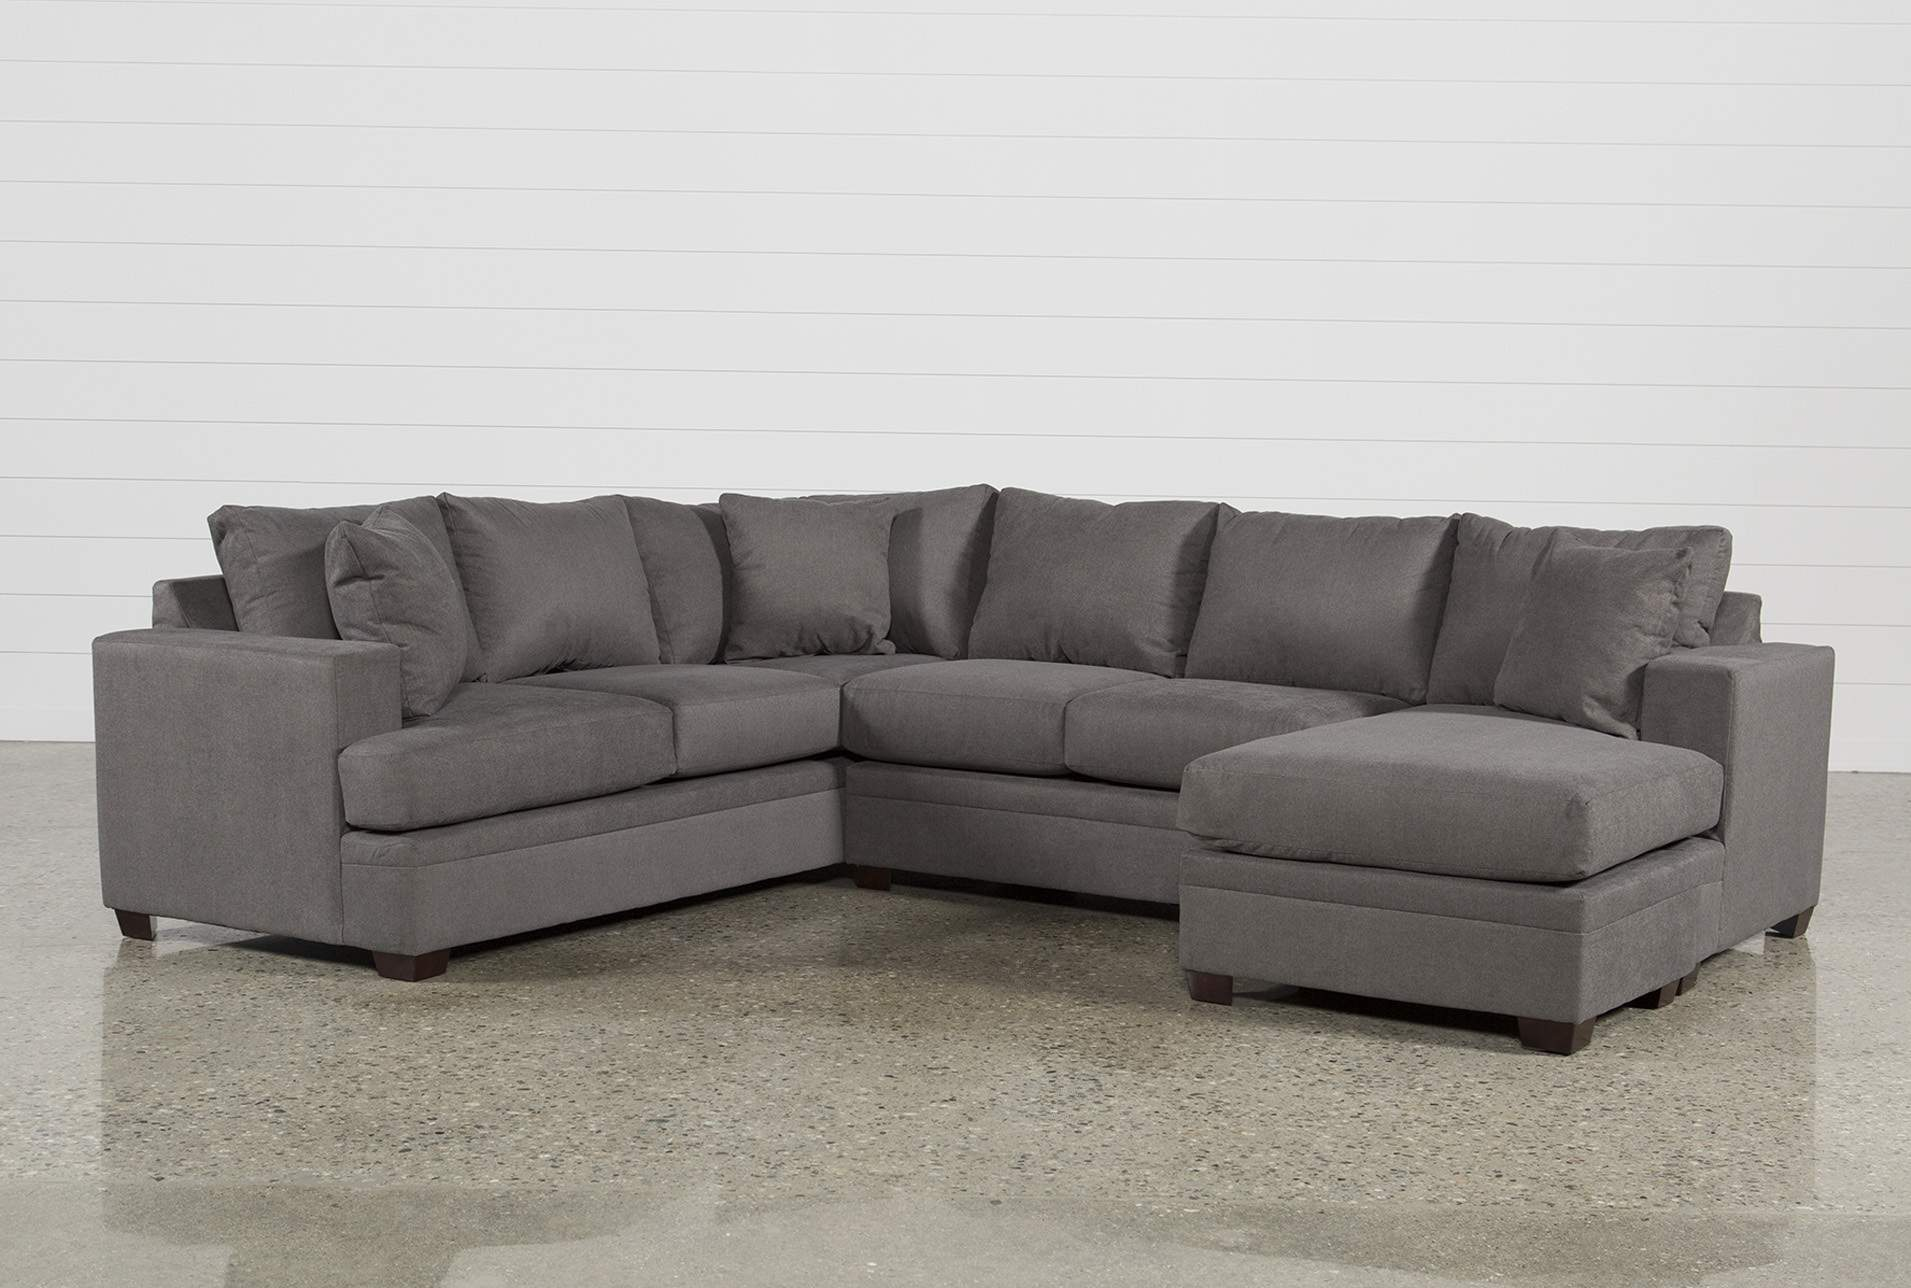 Advantages of Sectional Couch